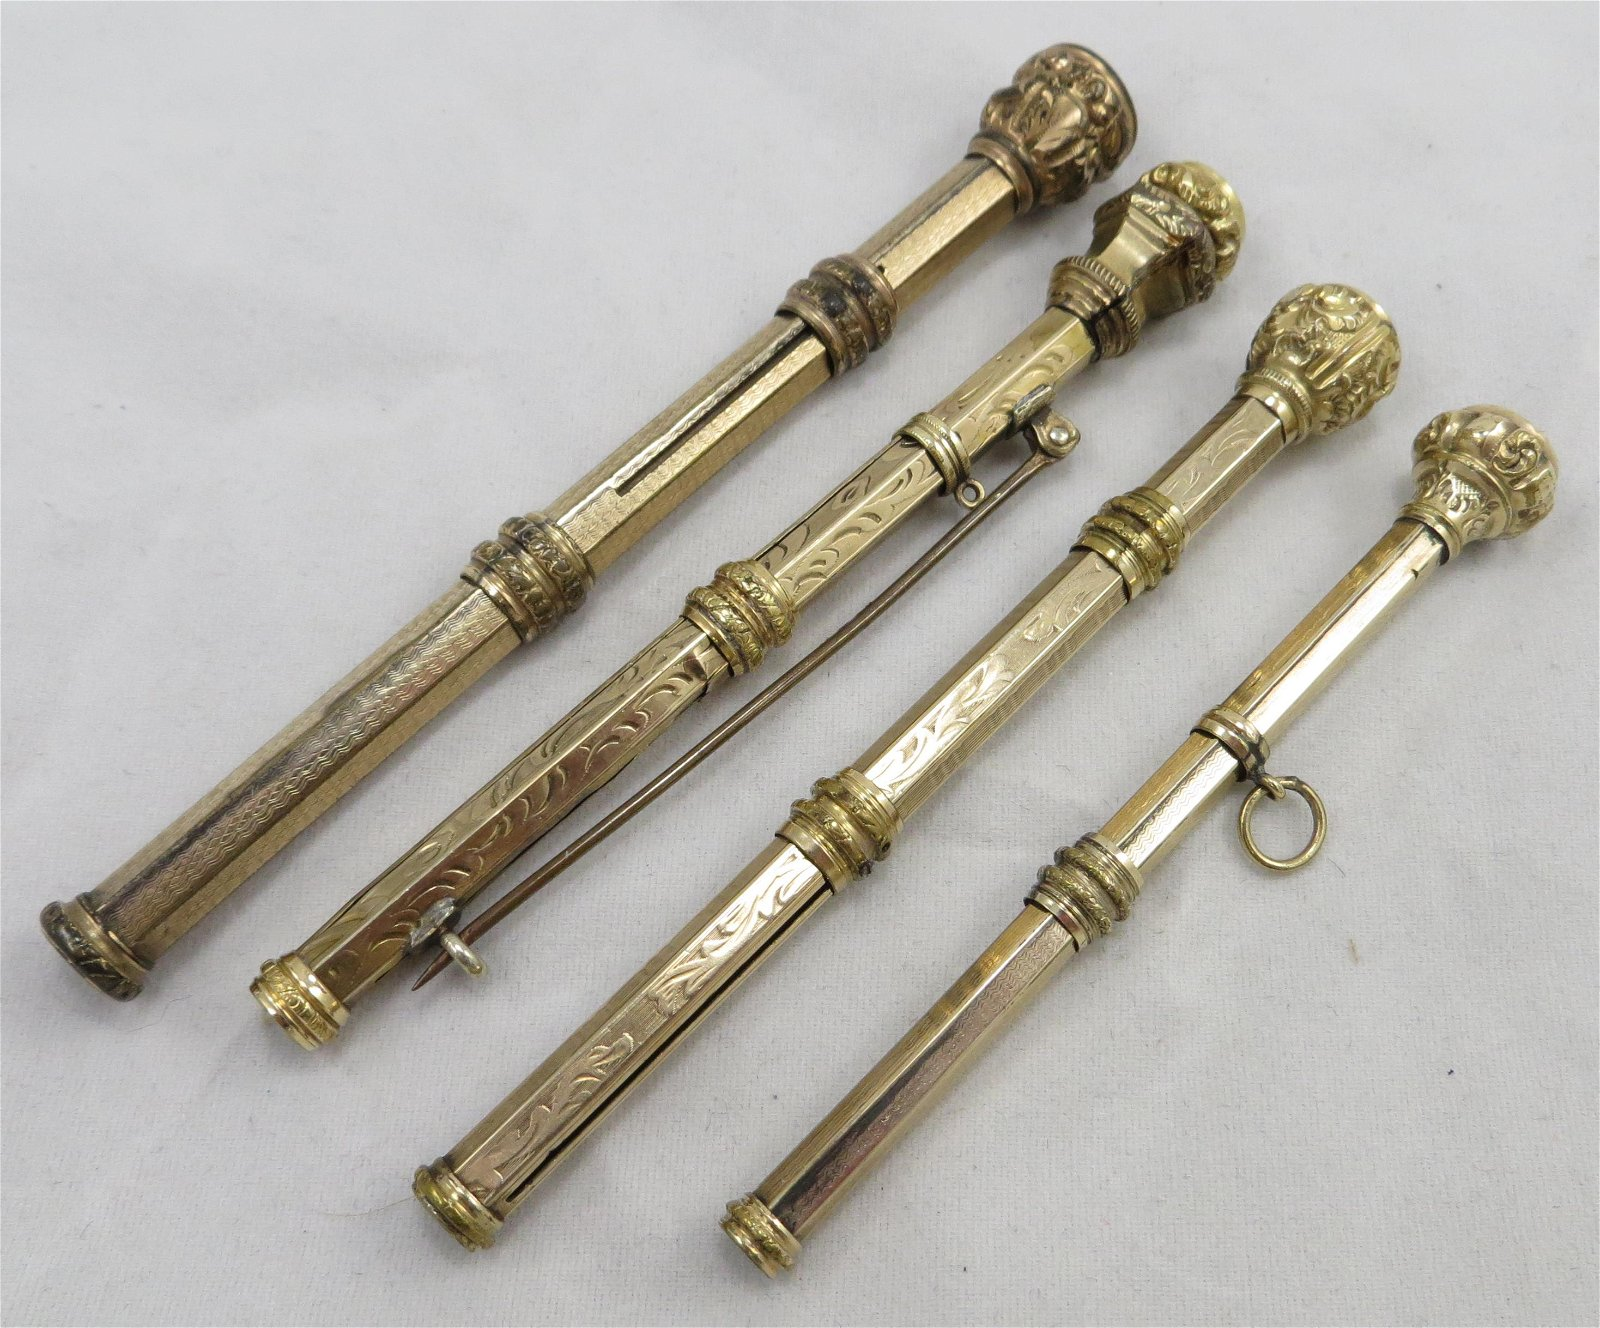 (4) LADIES VICTORIAN JEWEL-TOP PENS/PENCILS